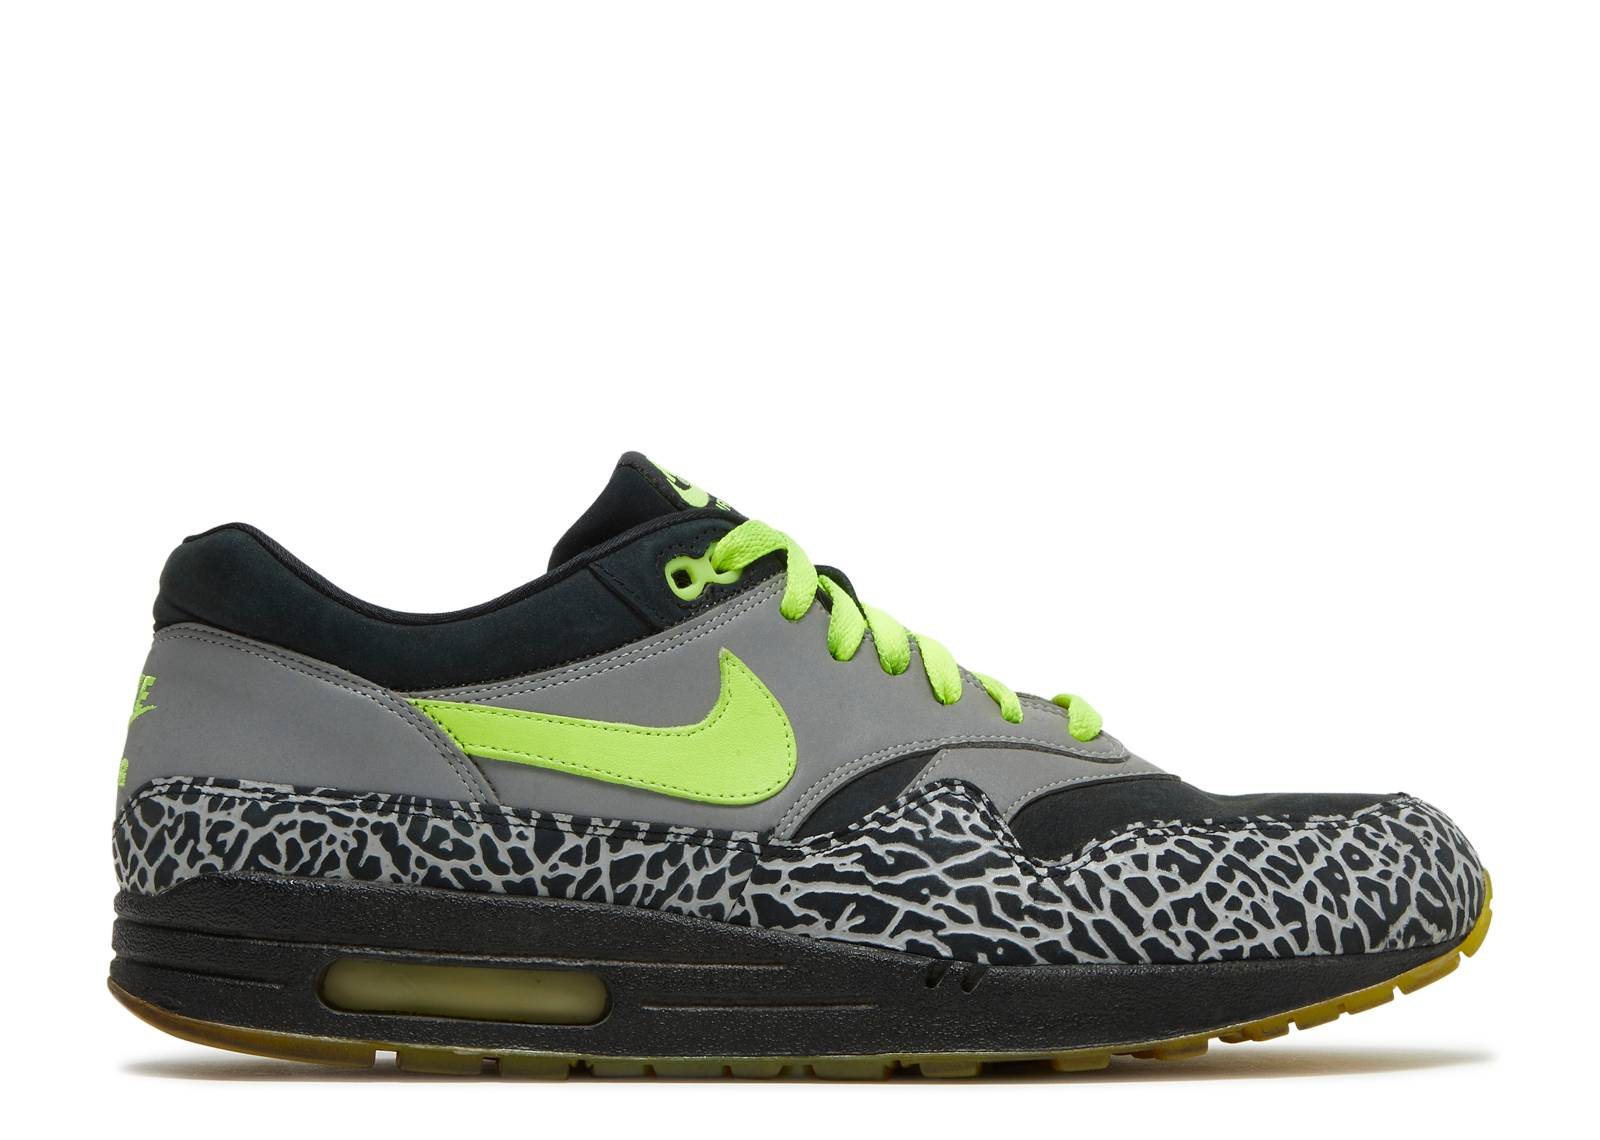 separation shoes 3a9b9 b08e3 nike. air max 1 premium